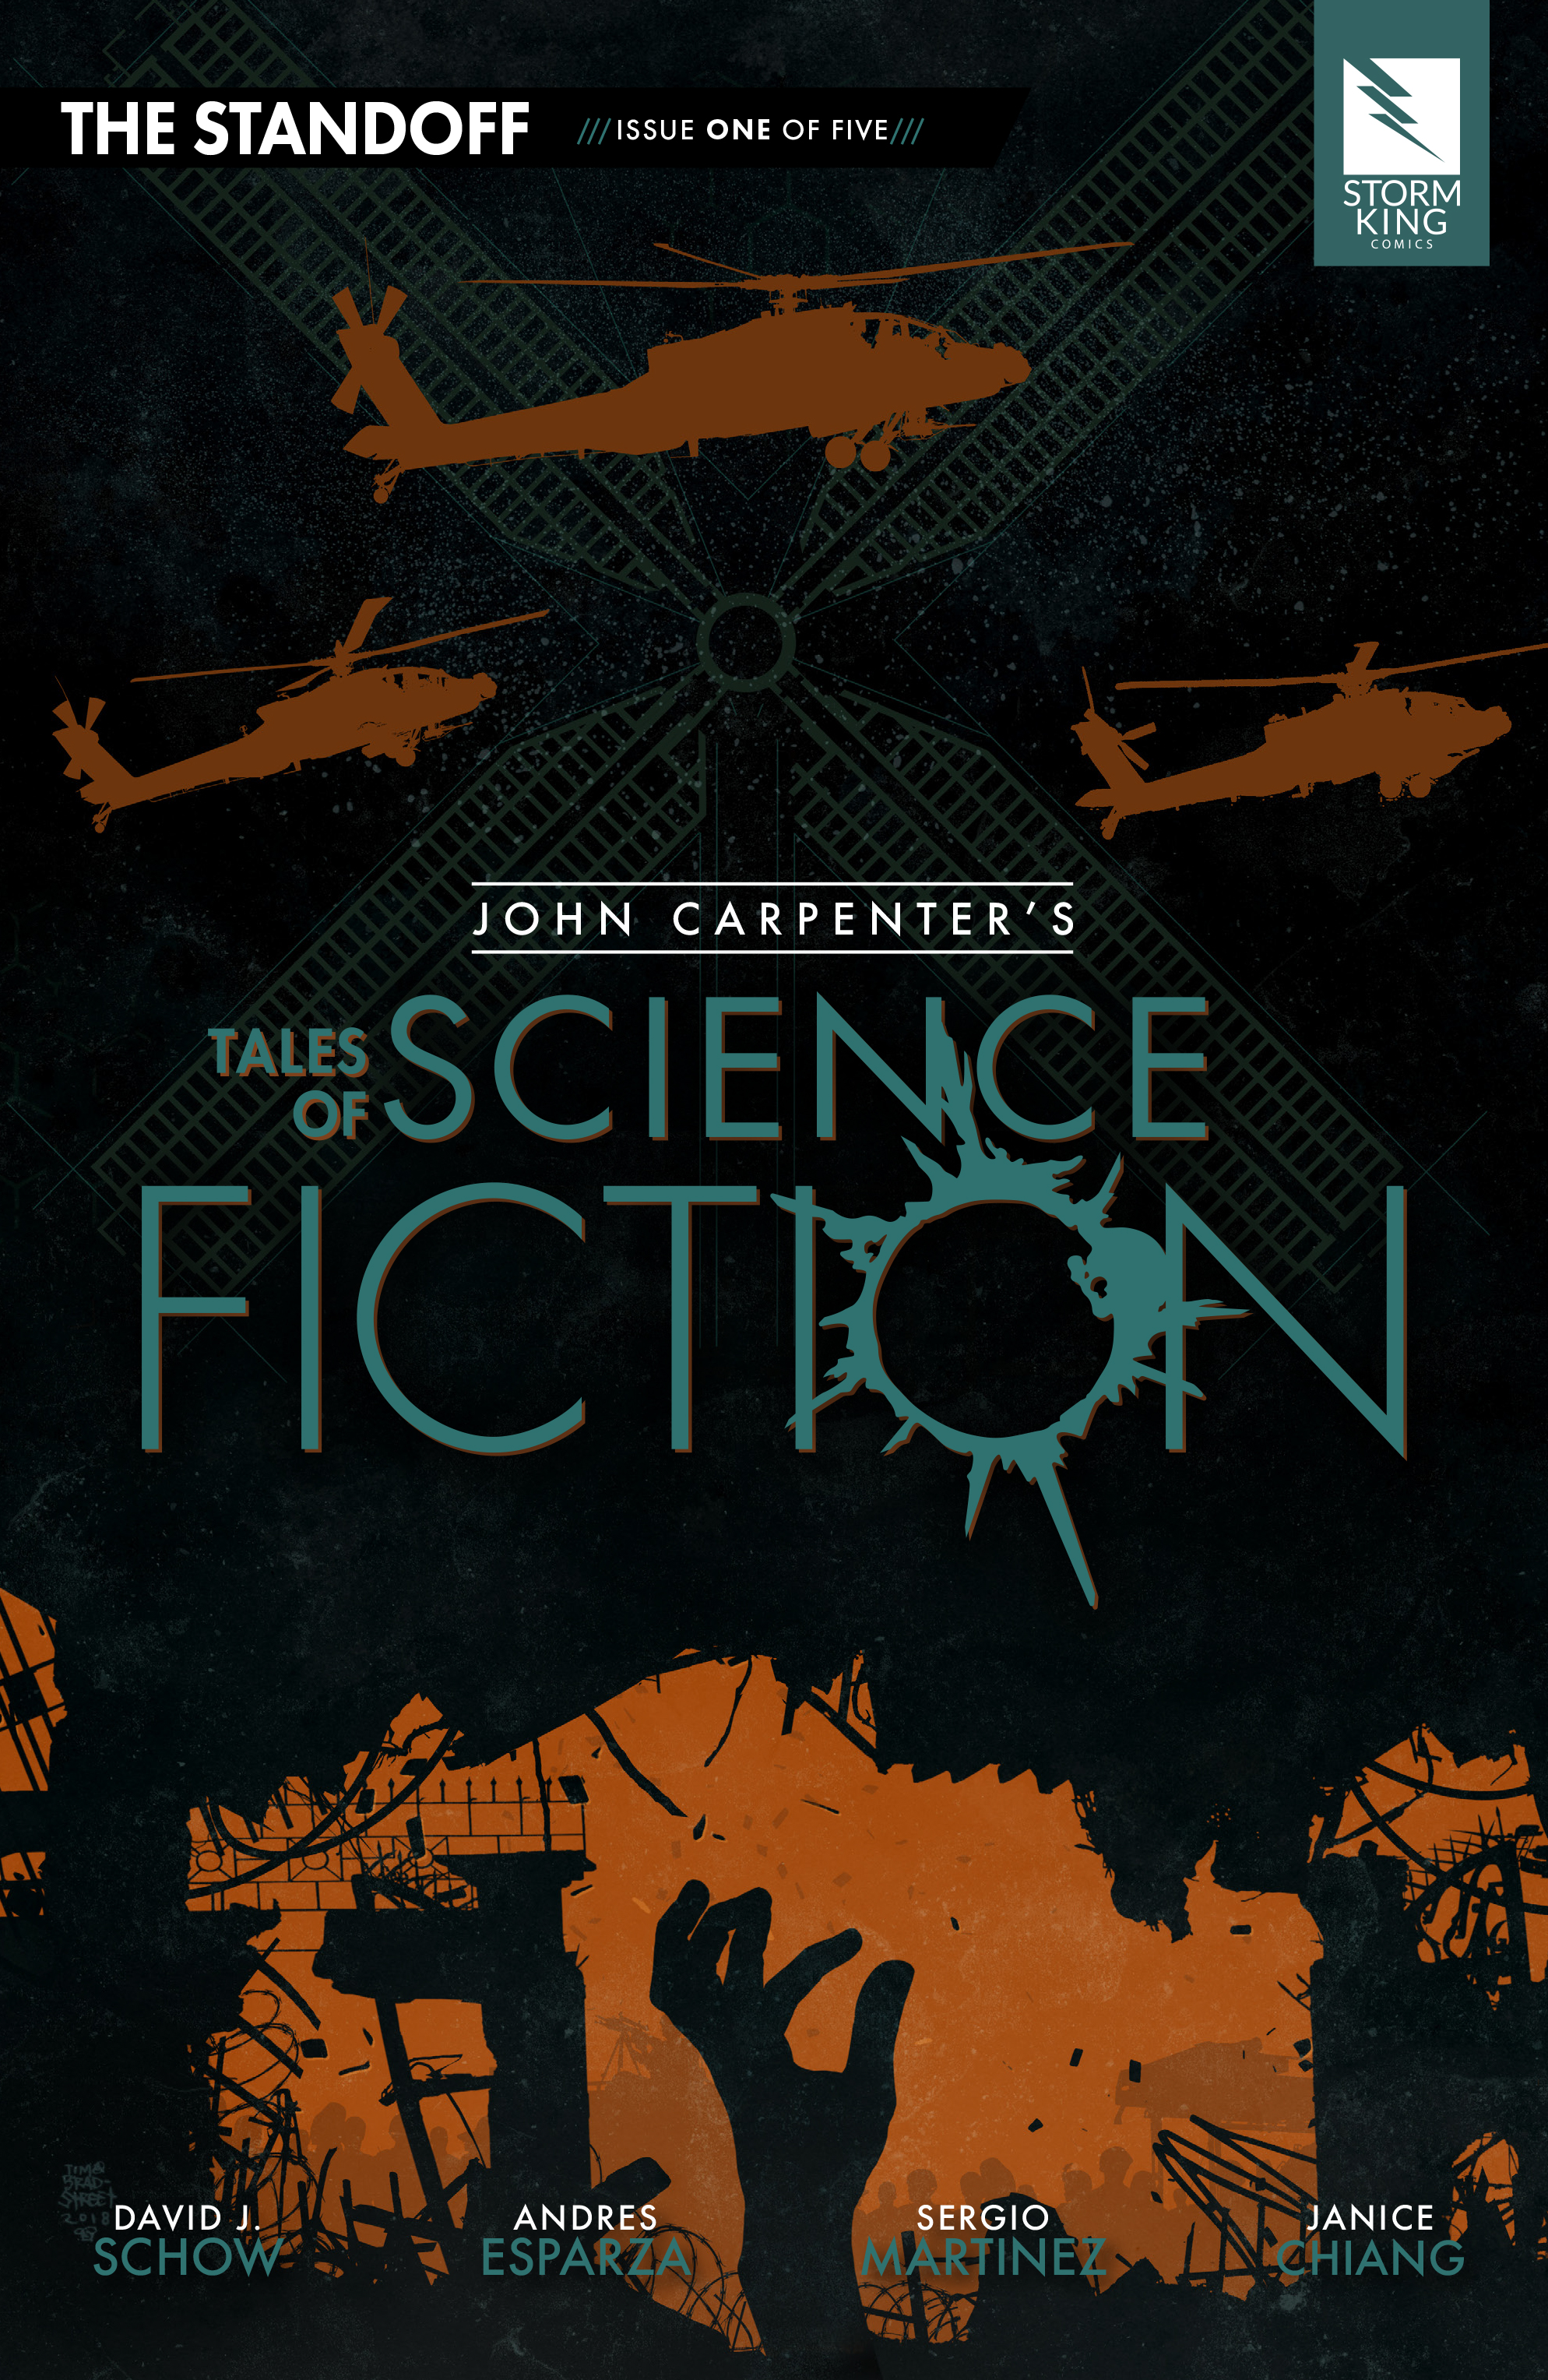 John Carpenters Tales of Science Fiction: The Standoff 1 Page 1